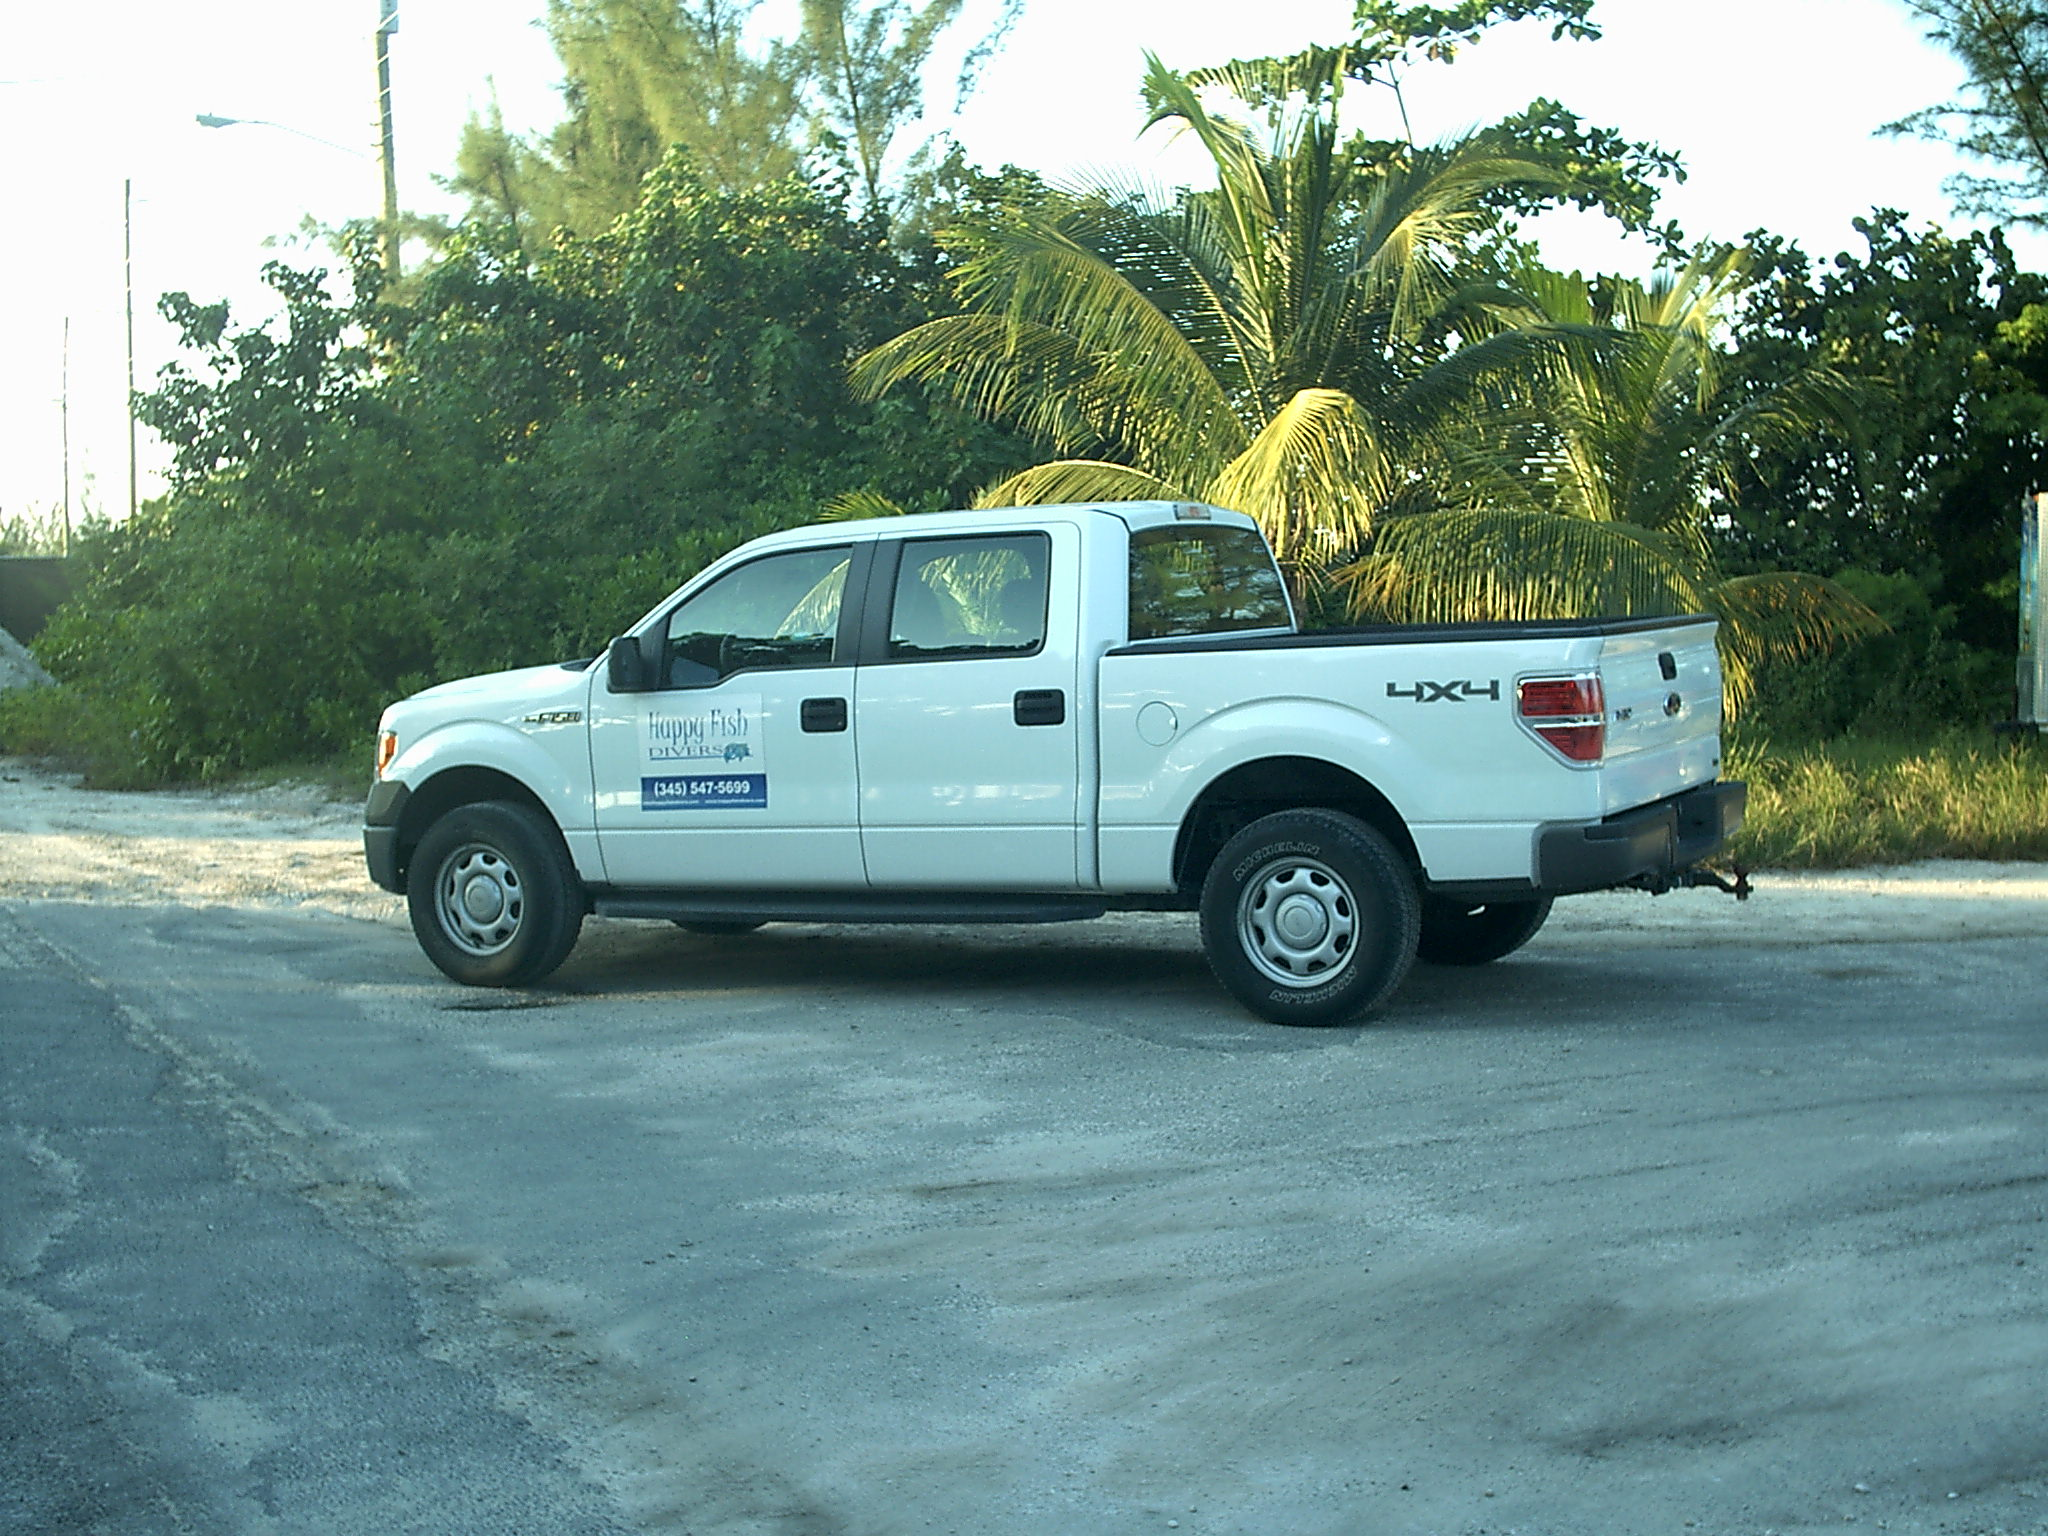 Ford F-150 Crew Cab For Up To 5 Passengers. (We Also Have a 9 Passenger Van If Needed)